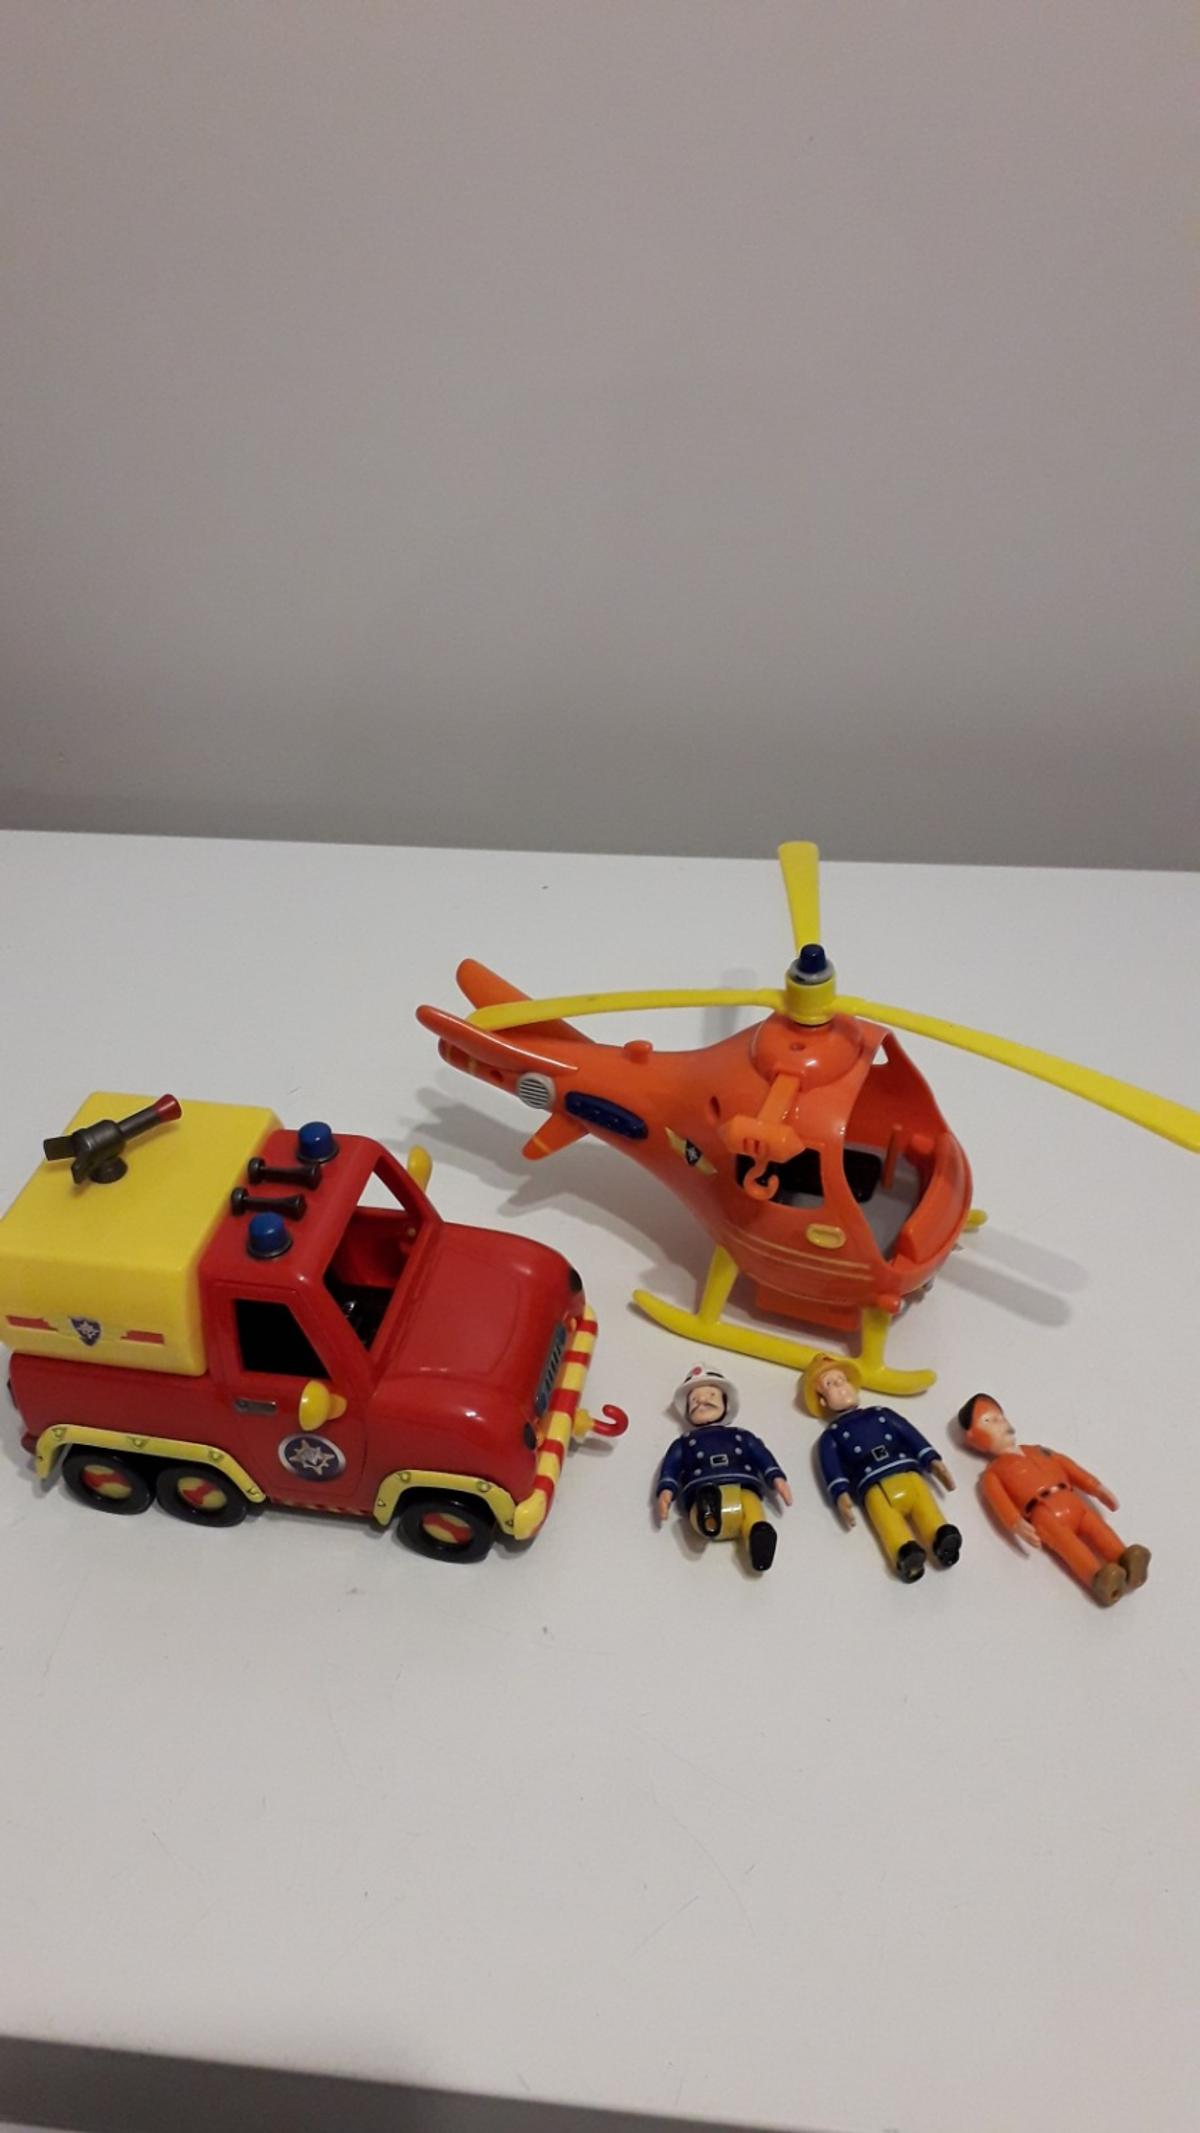 Fire engine , helicopter and 3 figures